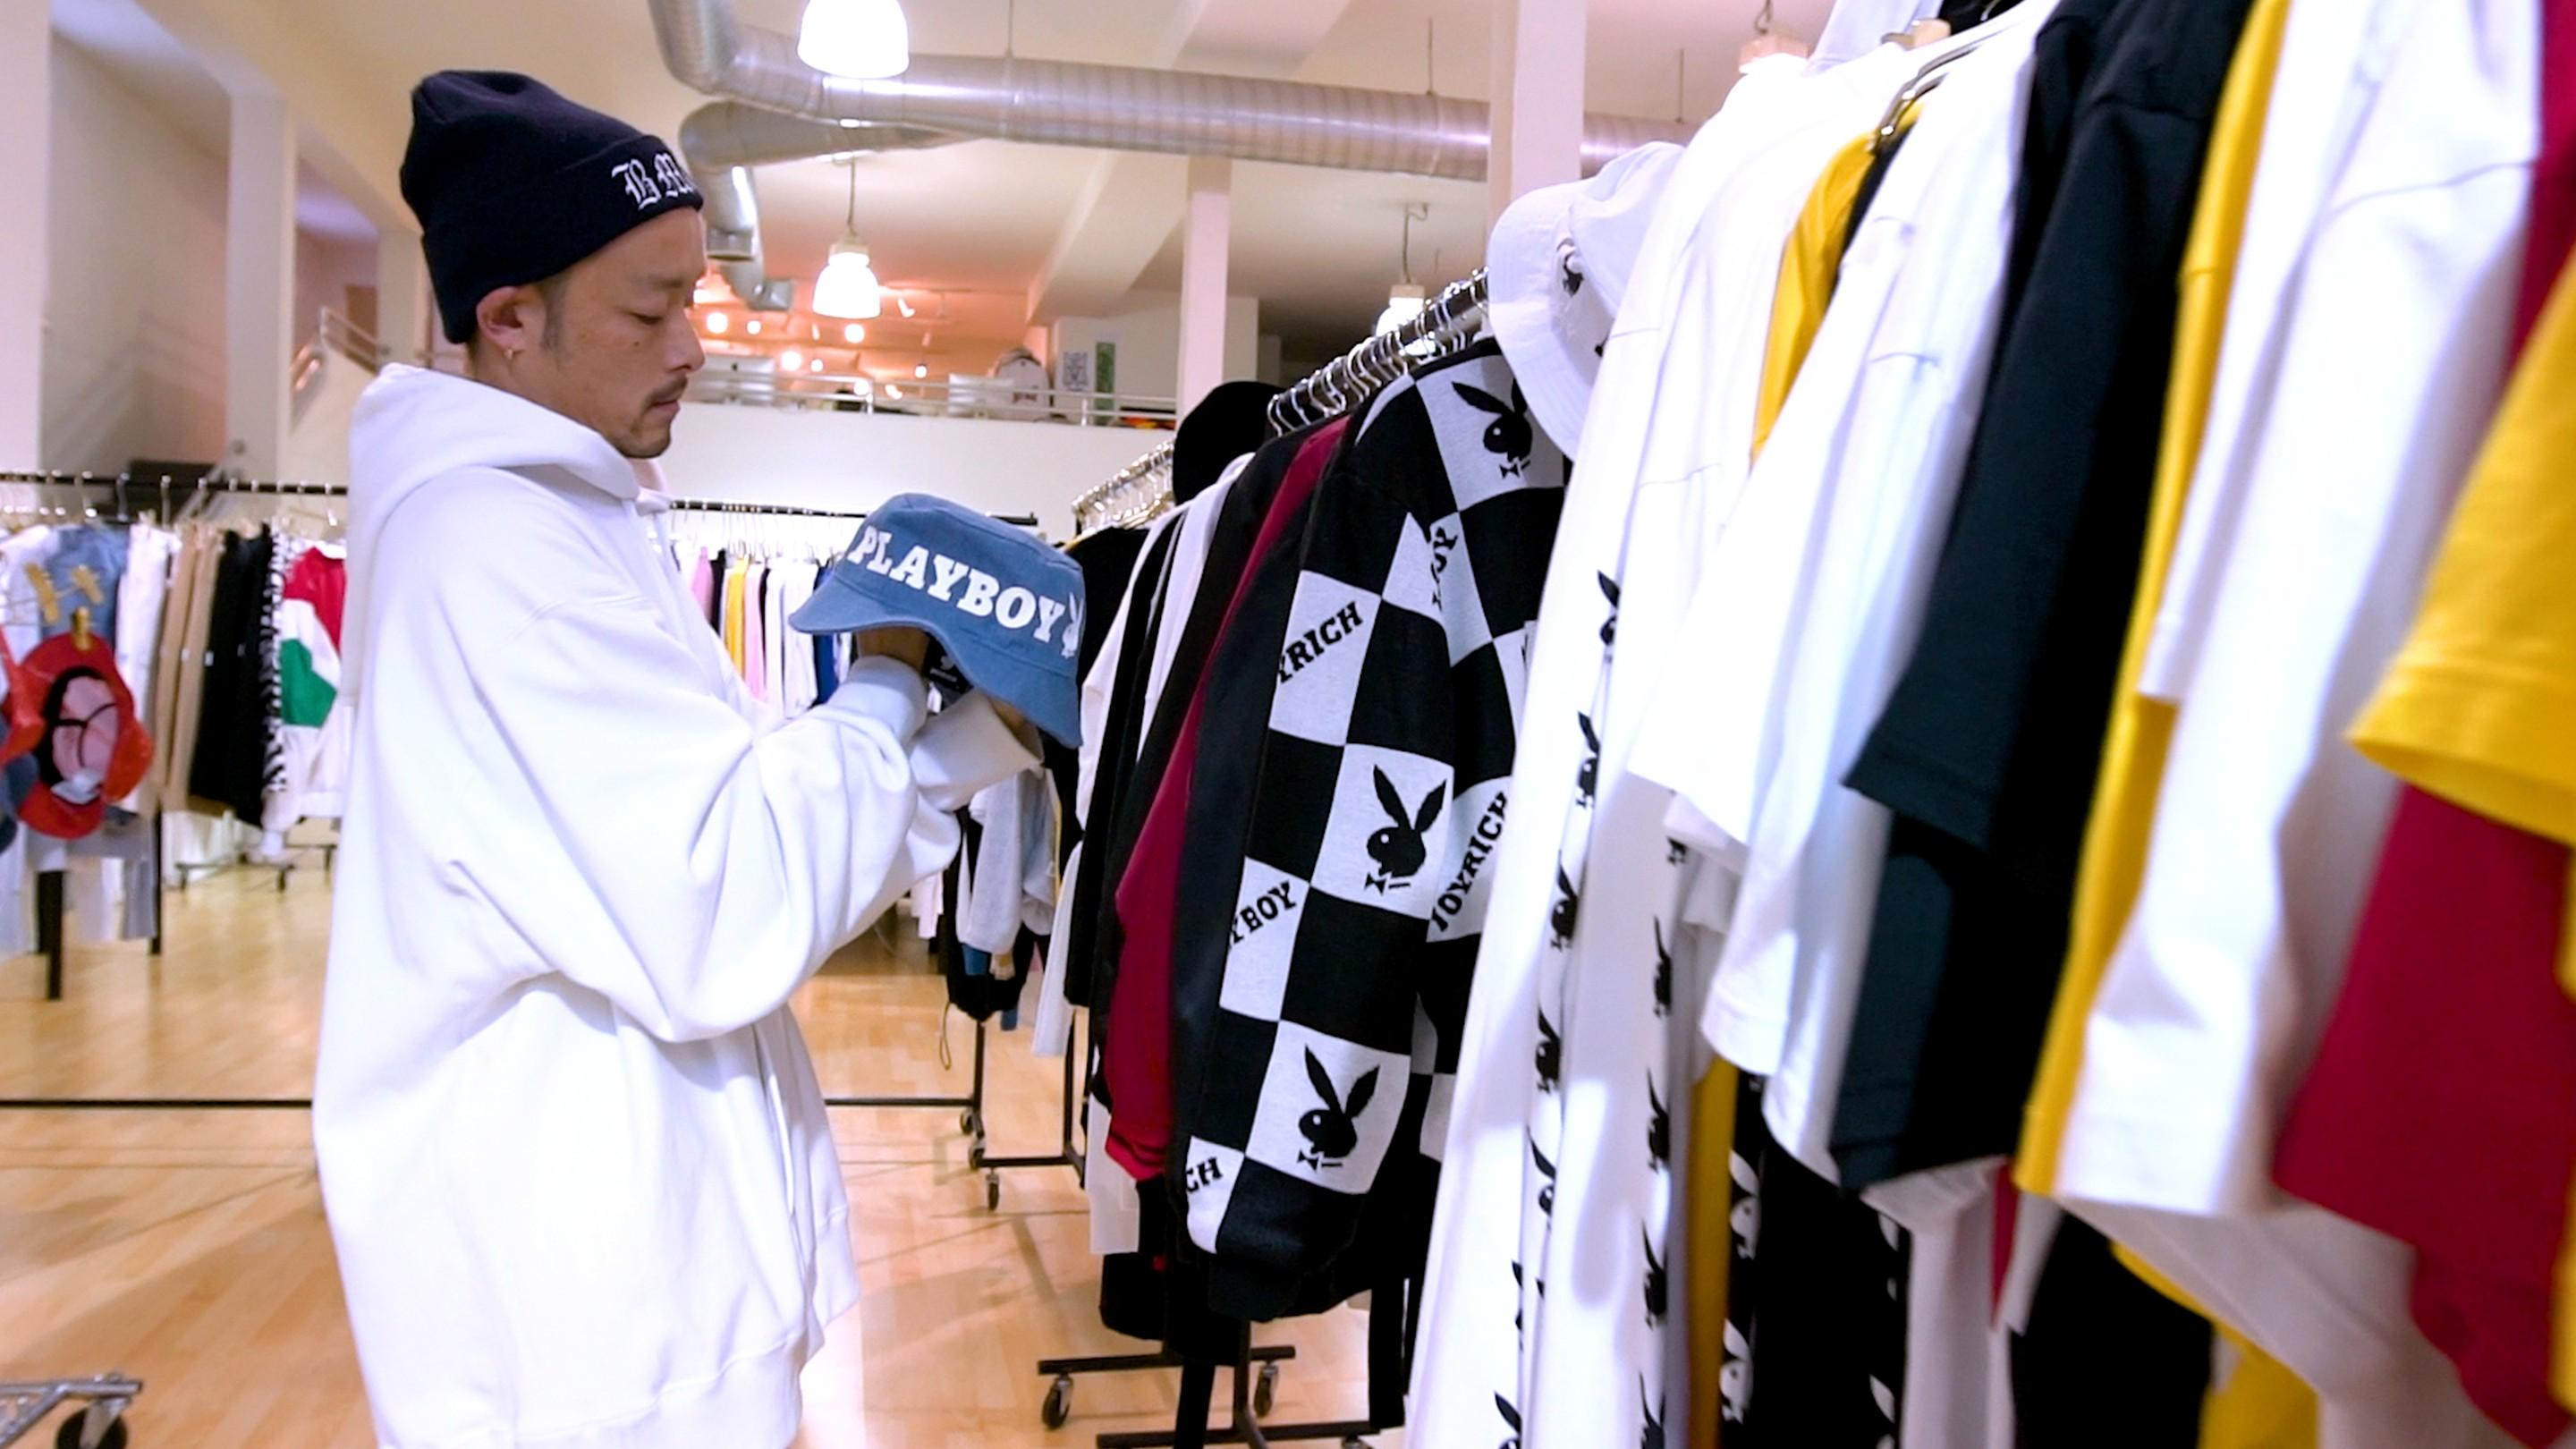 Joyrich's Tom Hirota Is Making the World a Brighter Place